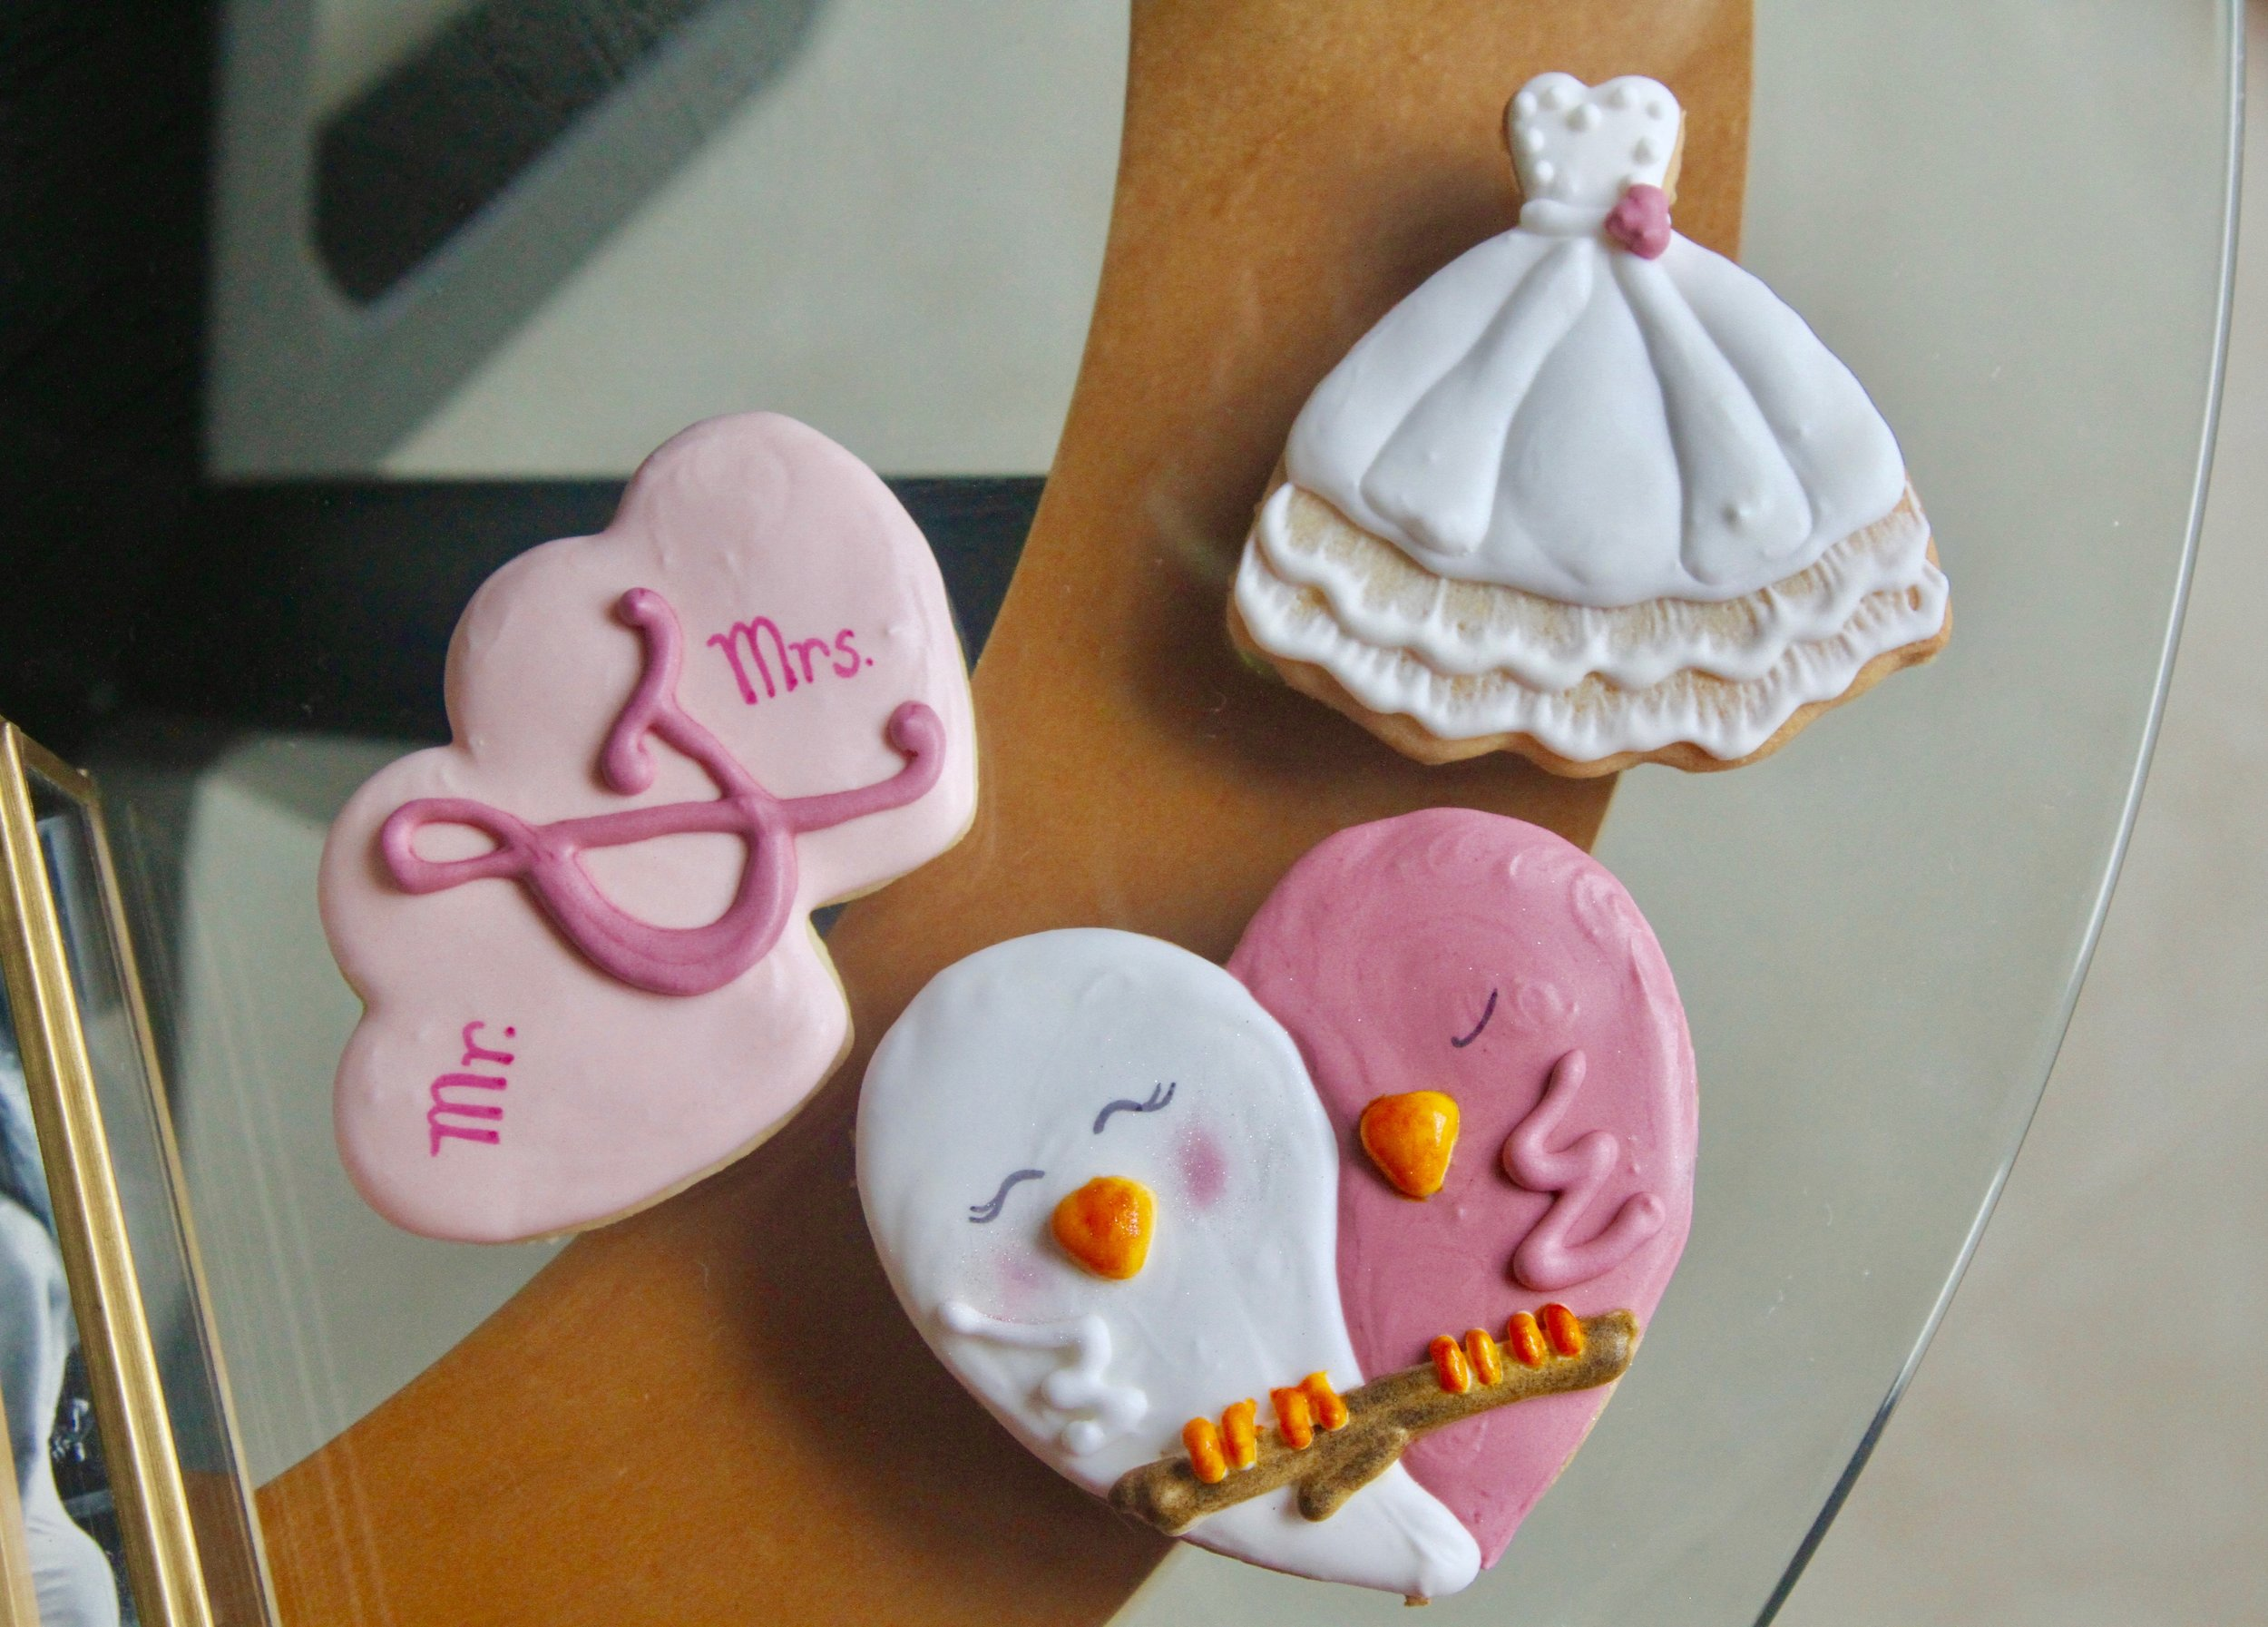 cookie cookies bridal shower wedding royal icing love birds mr and mrs dress royal icing pink white party favor favors